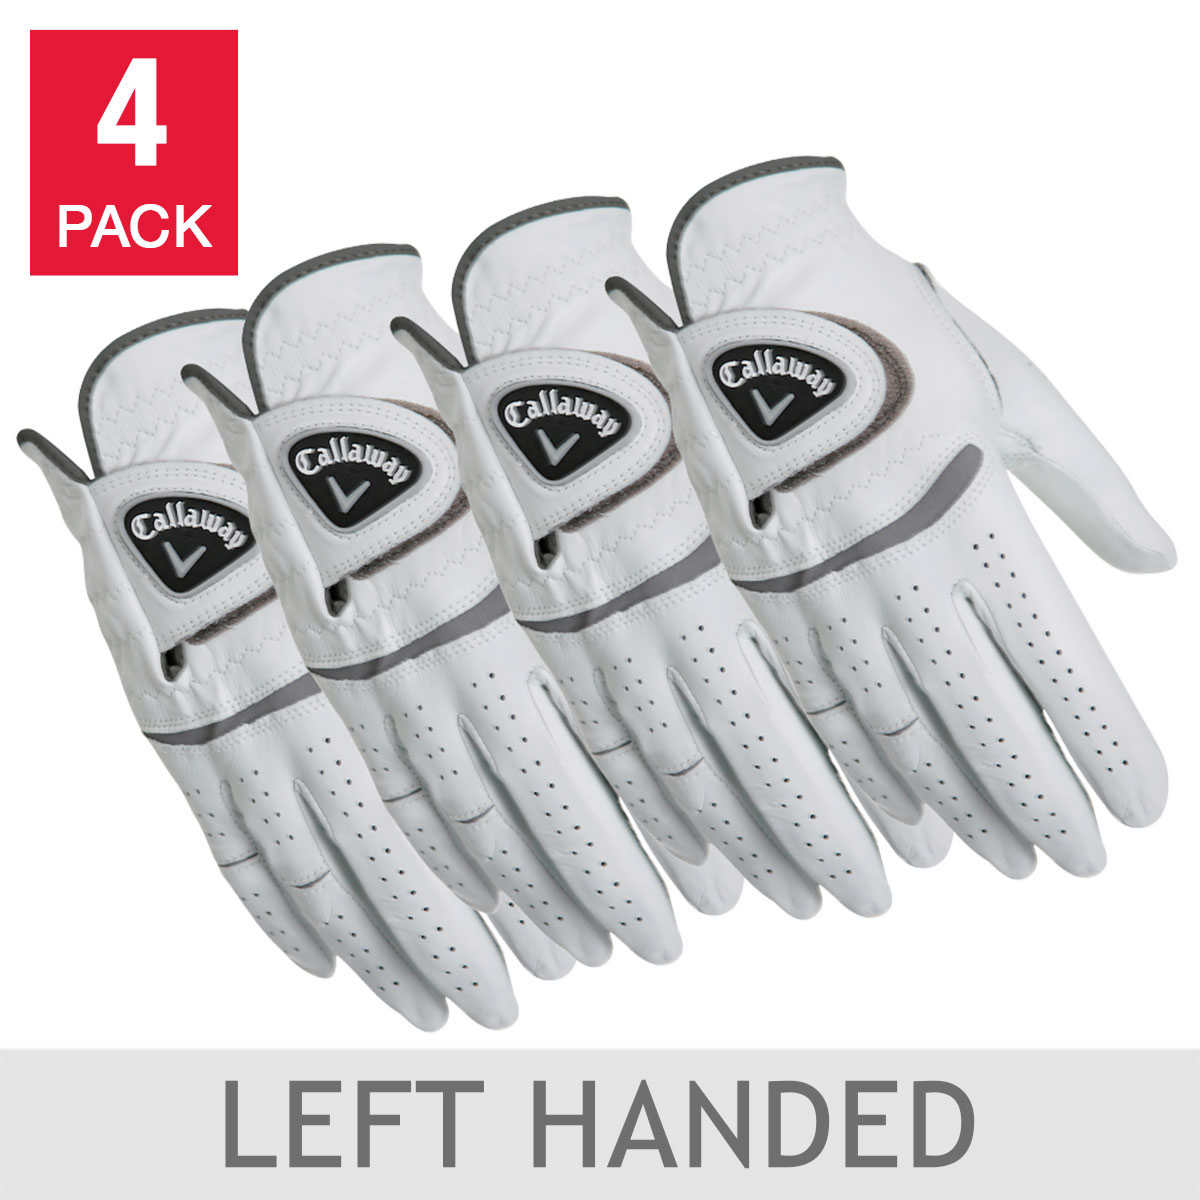 Callaway Men\'s Leather Golf Glove 4-pack: Right Handed